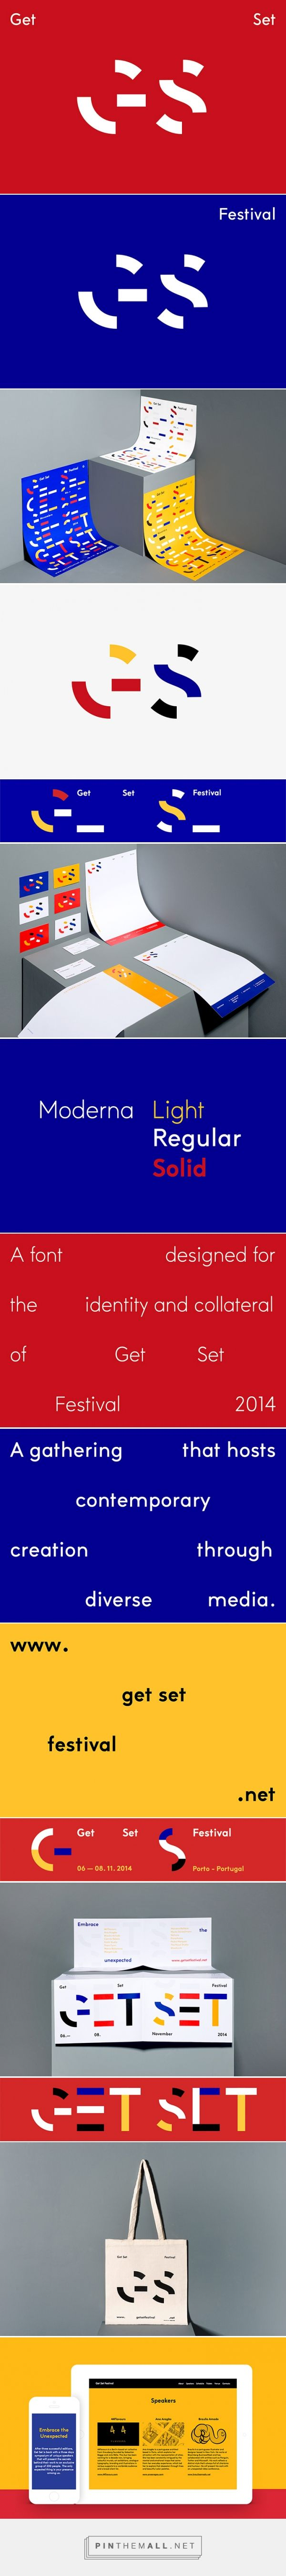 Get Set Festival – Visual Journal - created via https://pinthemall.net